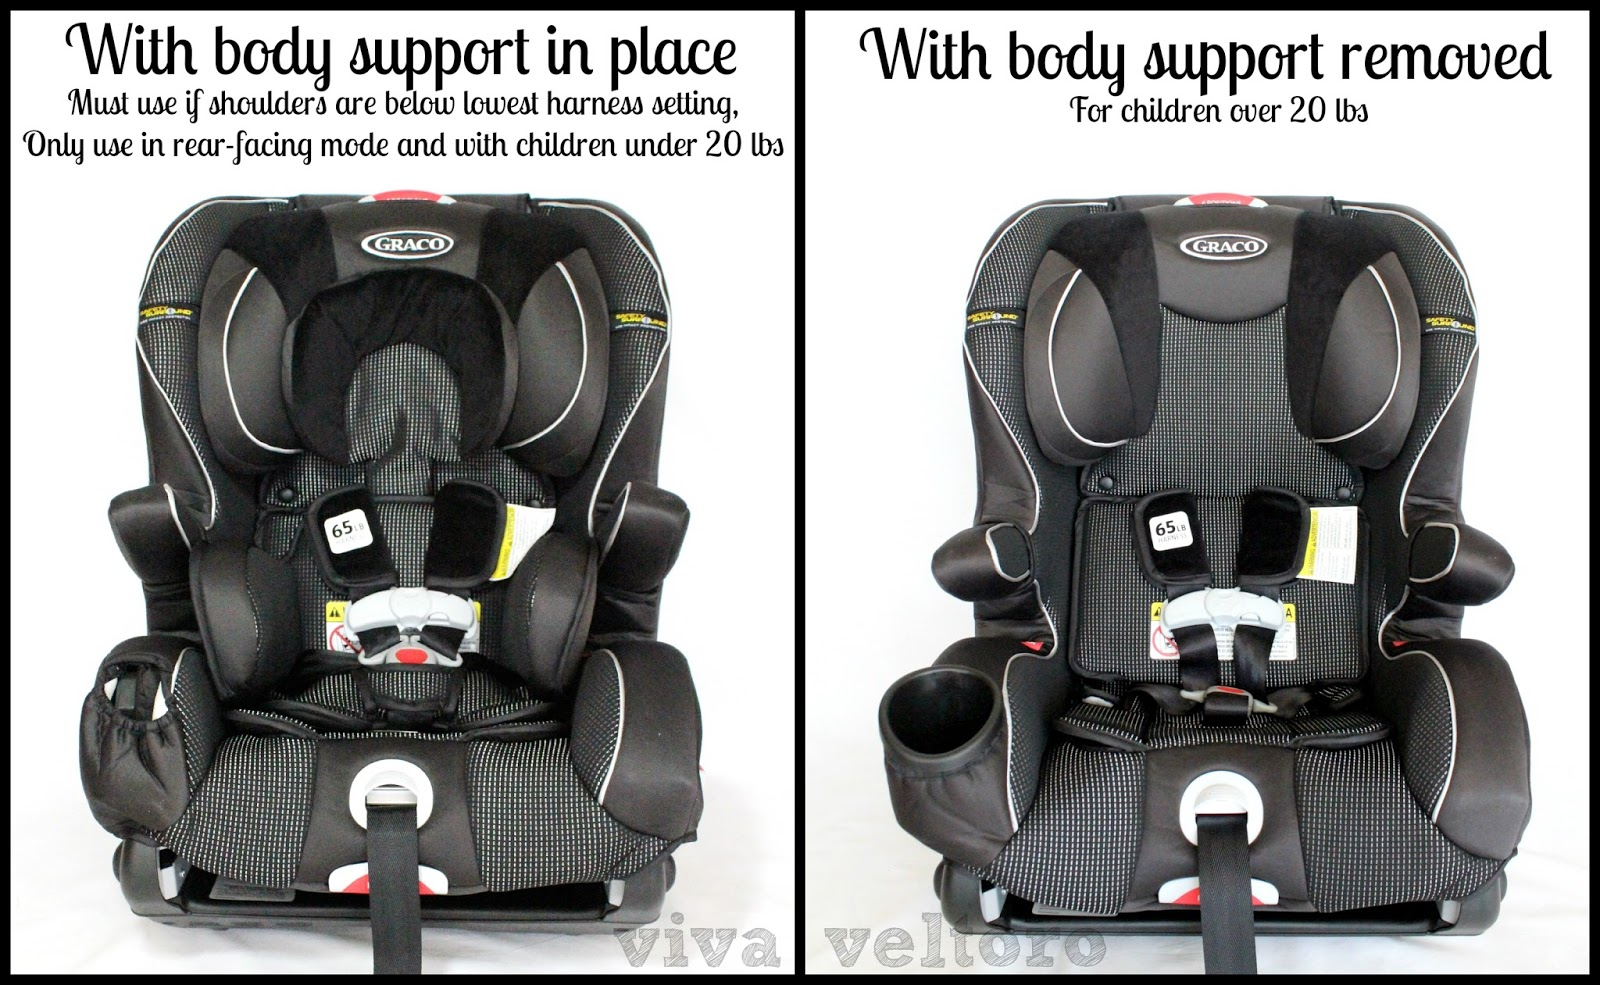 The Smart Seat Features A Five Point Safety Harness With Included Covers System Is Very Easy To Use Simply Fasten Chest Clips